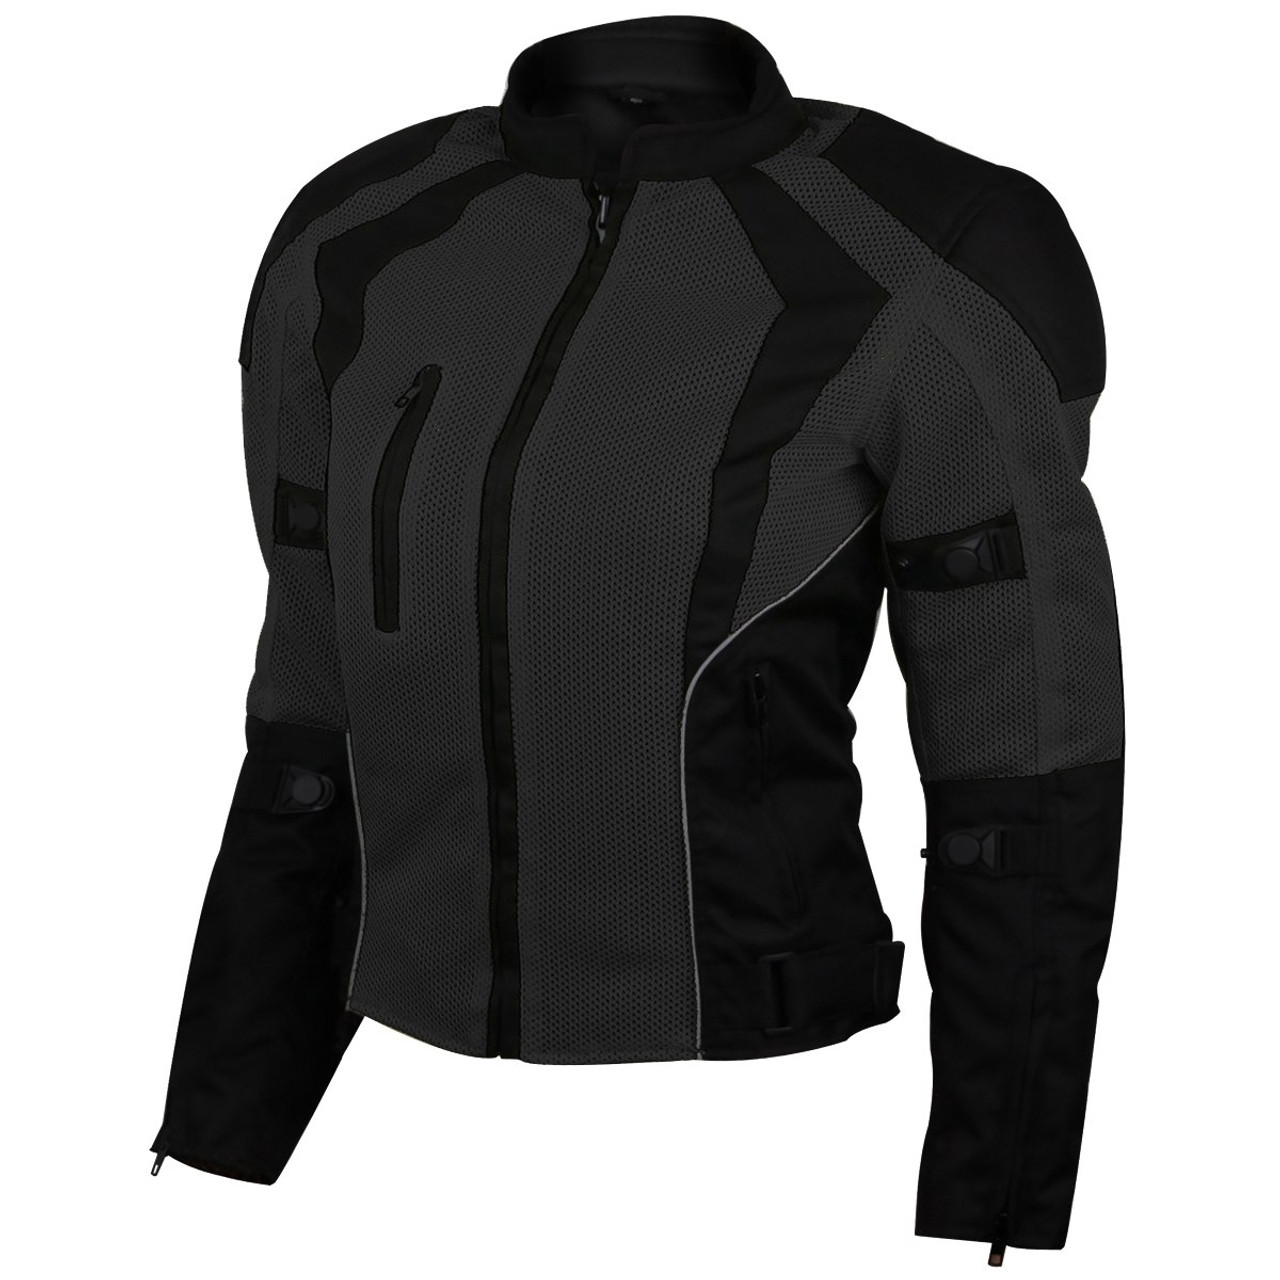 variety of designs and colors for whole family top fashion Womens Advanced 3-Season CE Armor Black Mesh Motorcycle Jacket